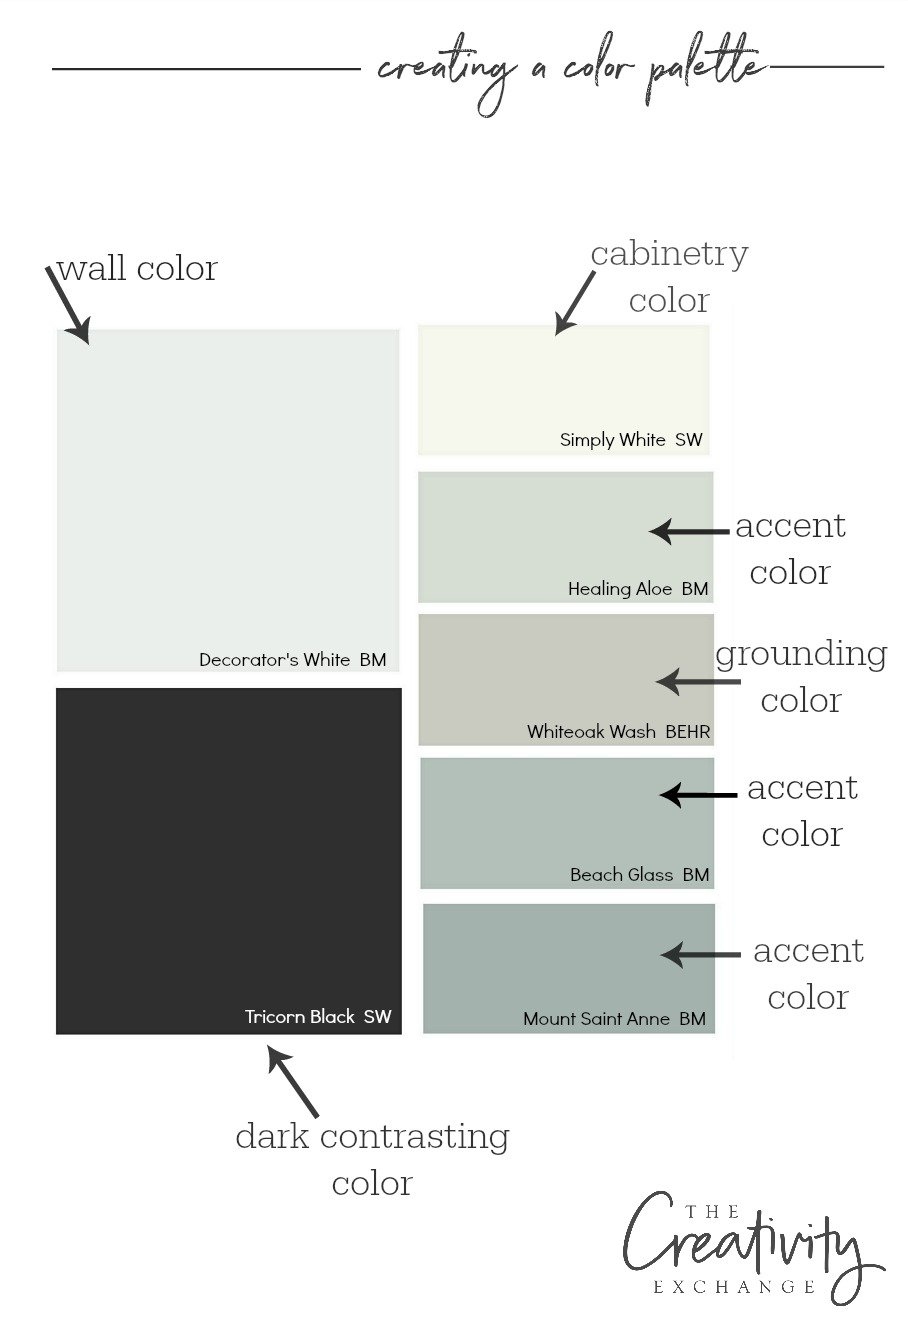 How to create a color palette for a space.